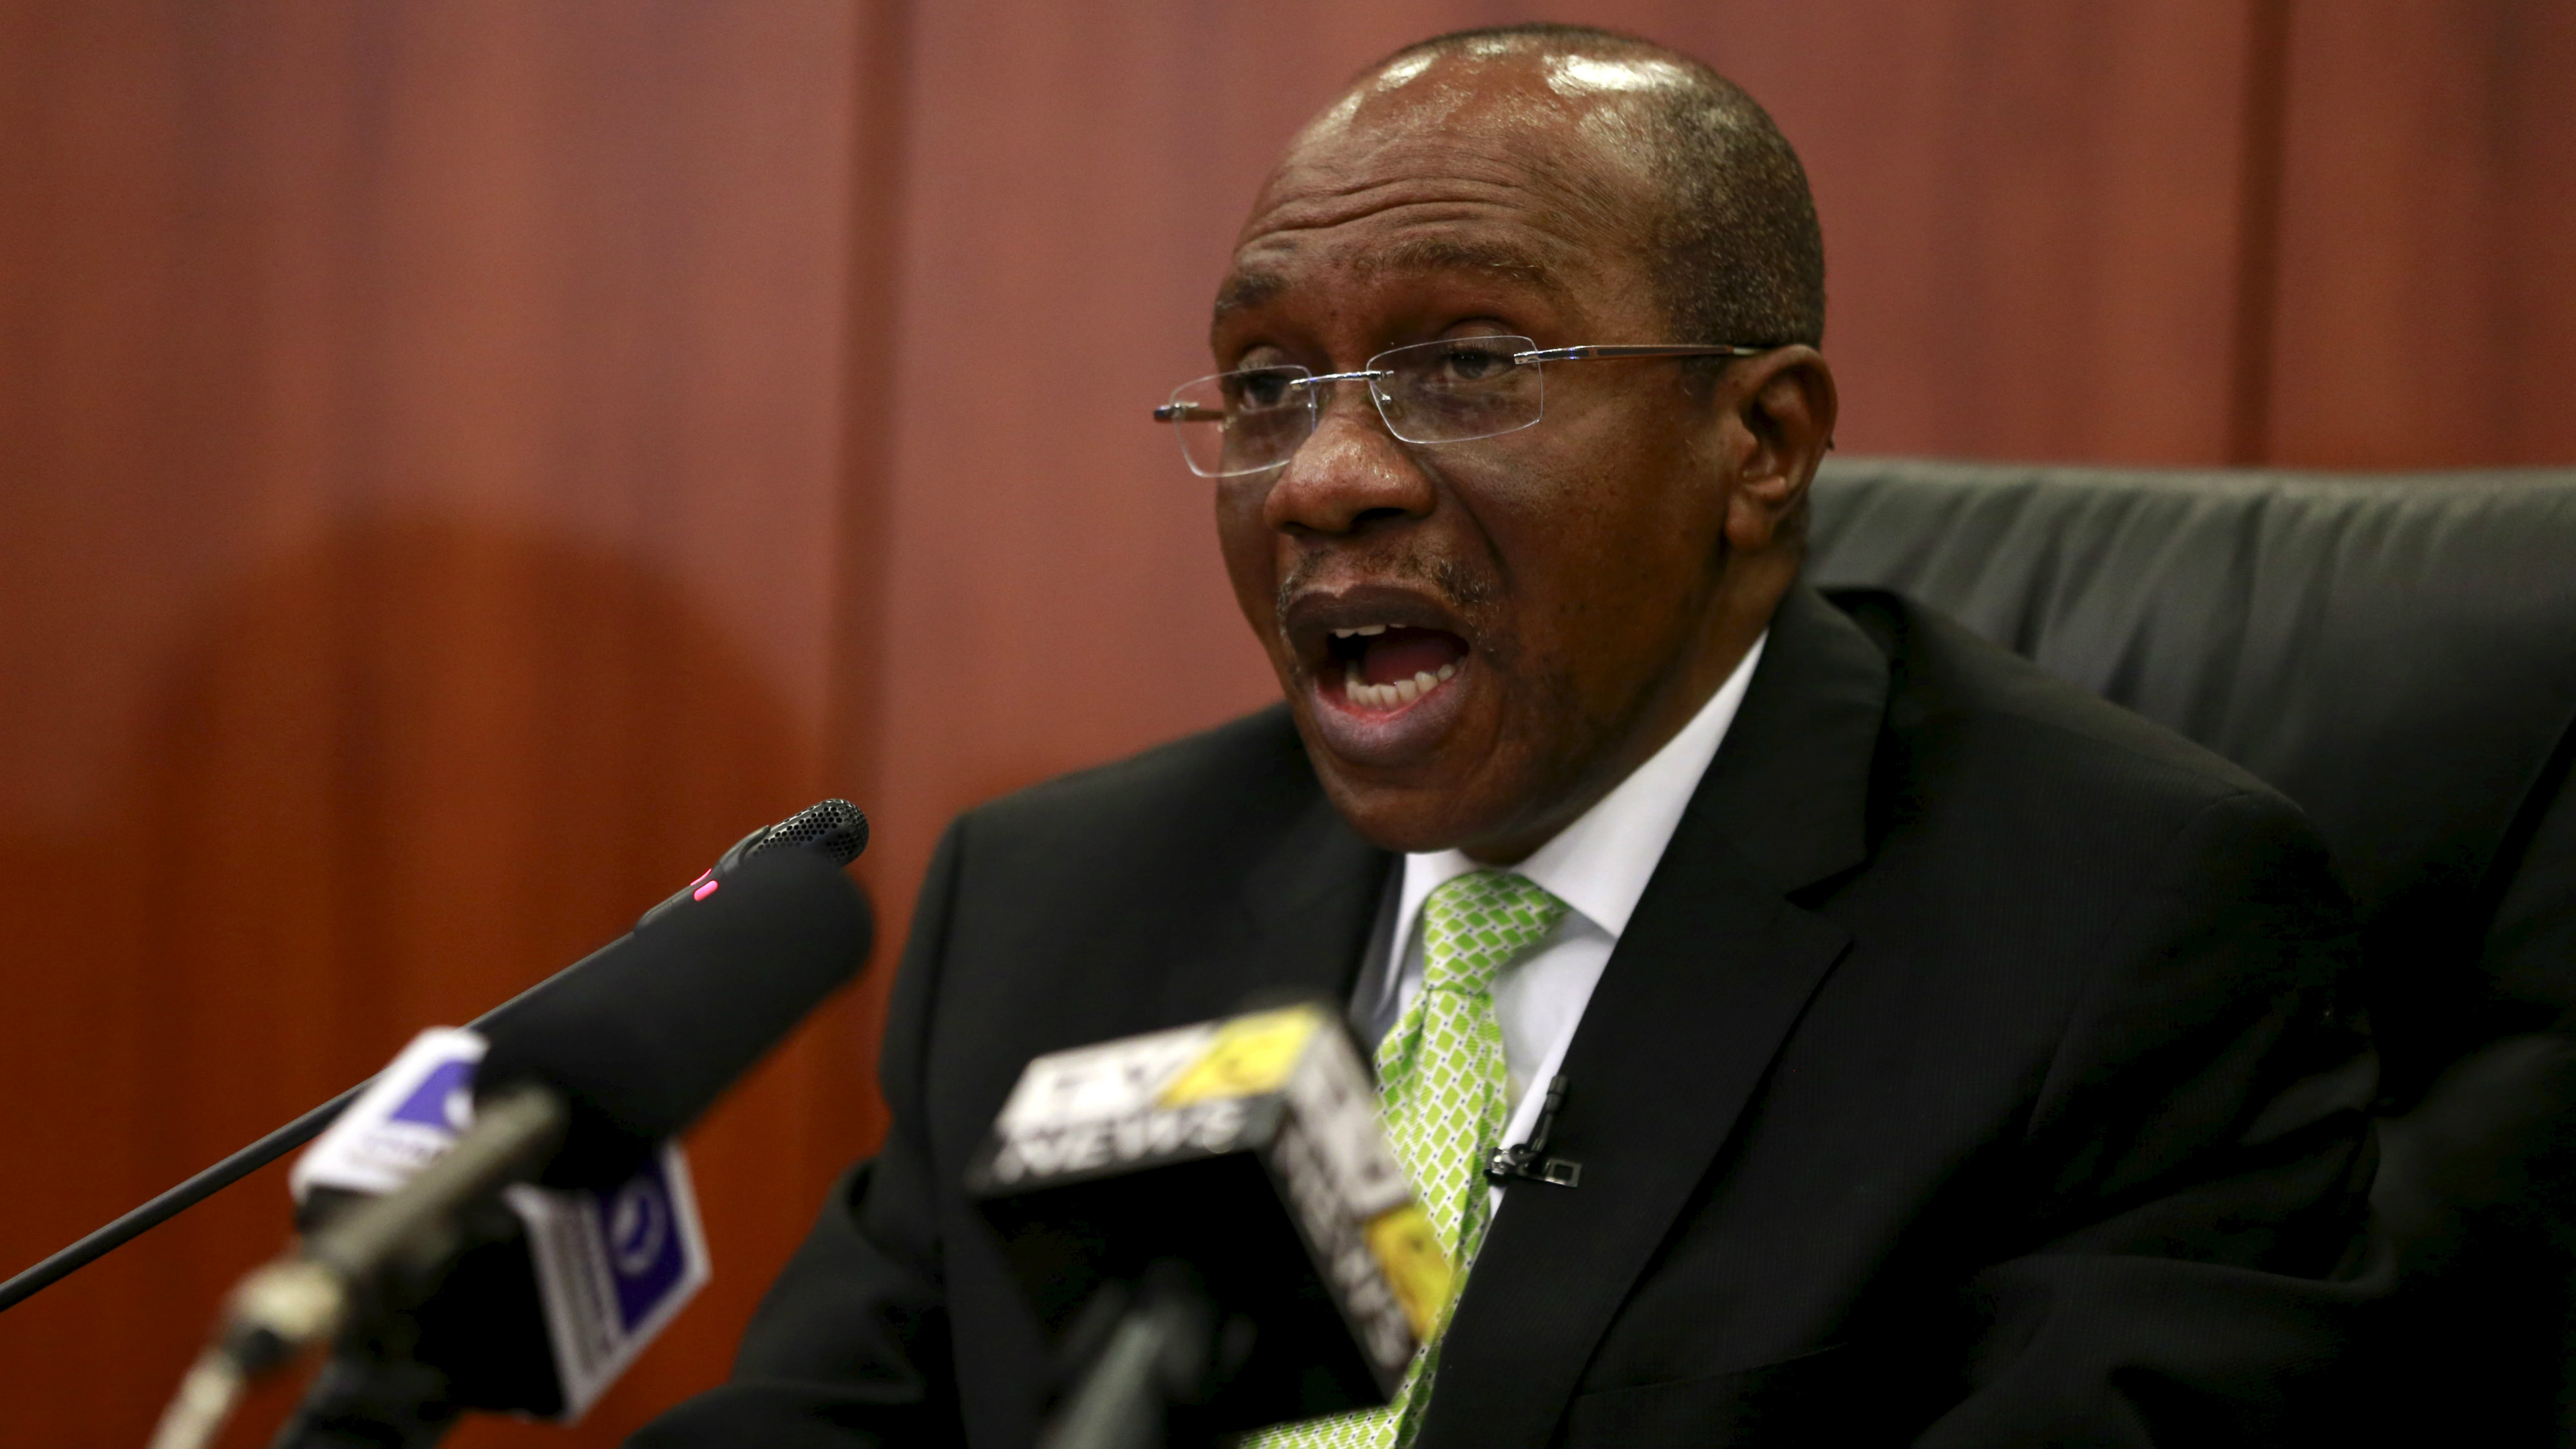 Governor Godwin Emefiele announces that Nigeria's central bank is keeping its benchmark interest rate on hold at 13 percent in Abuja, Nigeria, July 24, 2015. Nigeria's central bank kept its benchmark interest rate on hold at 13 percent on Friday, saying concerns about rising inflation and expected normalisation of U.S. interest rates meant monetary policy in Africa's biggest economy had to remain tight